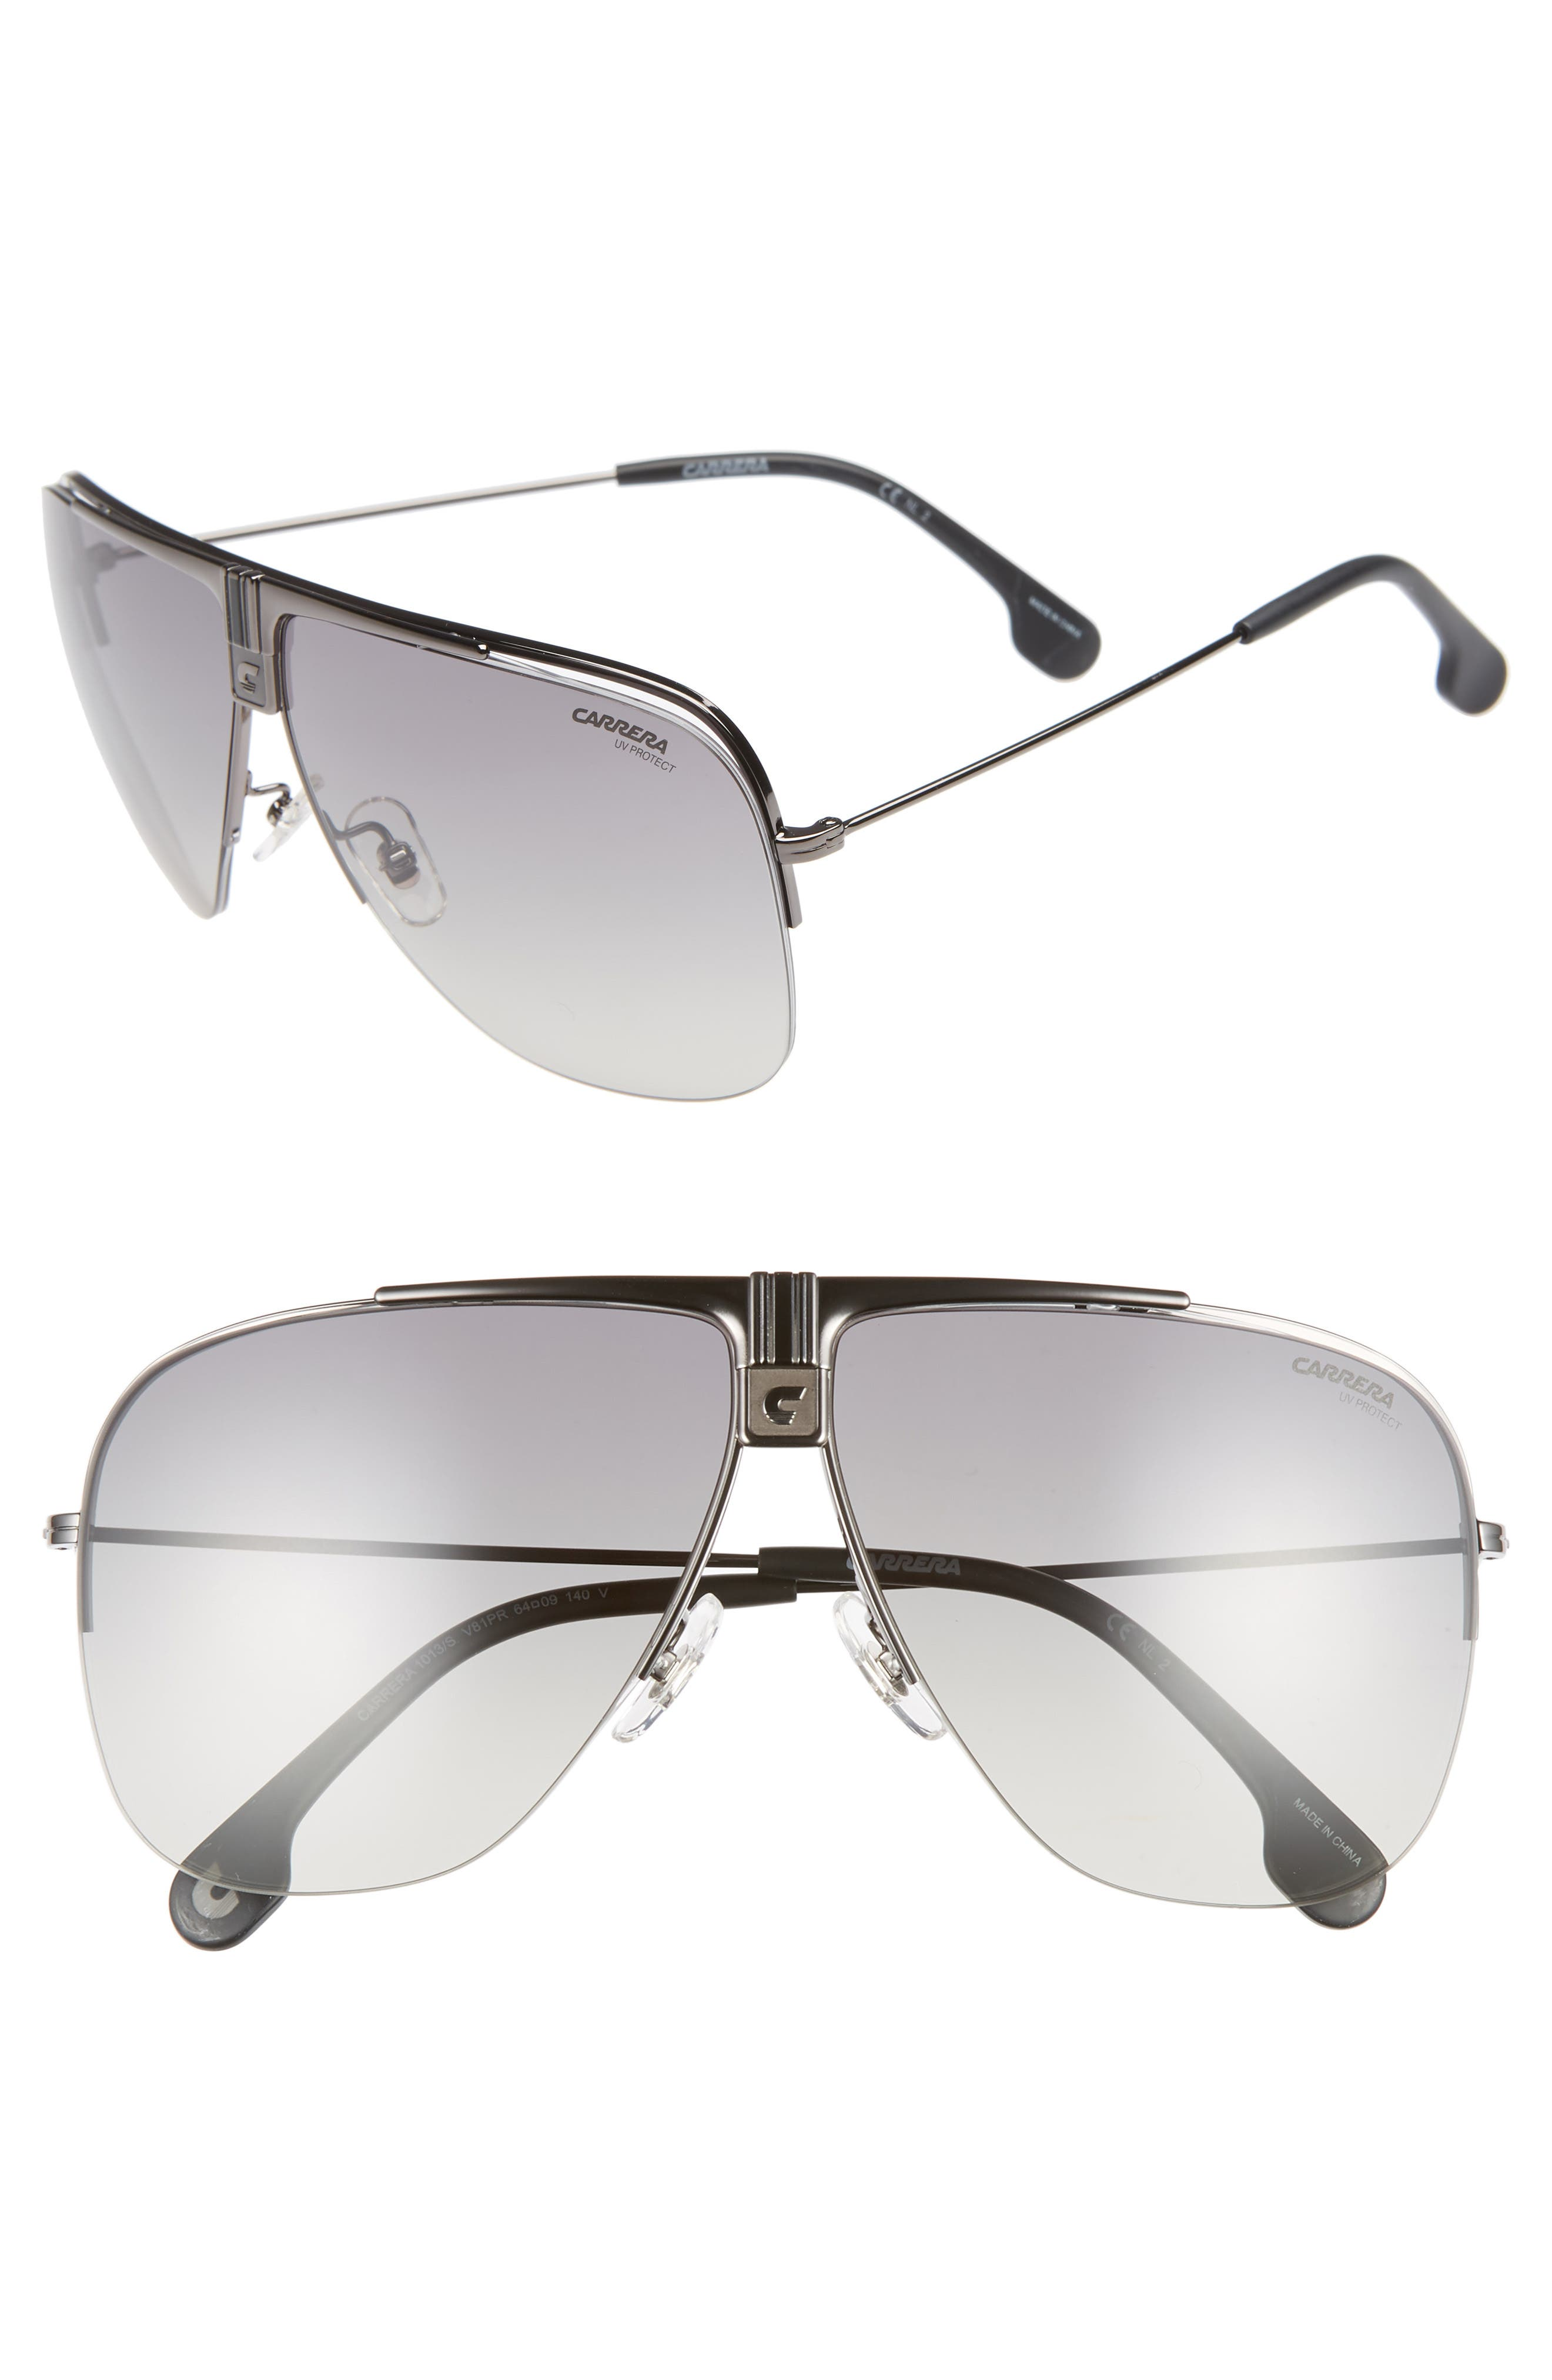 Carrera Eyewear Metal Aviator Sunglasses -